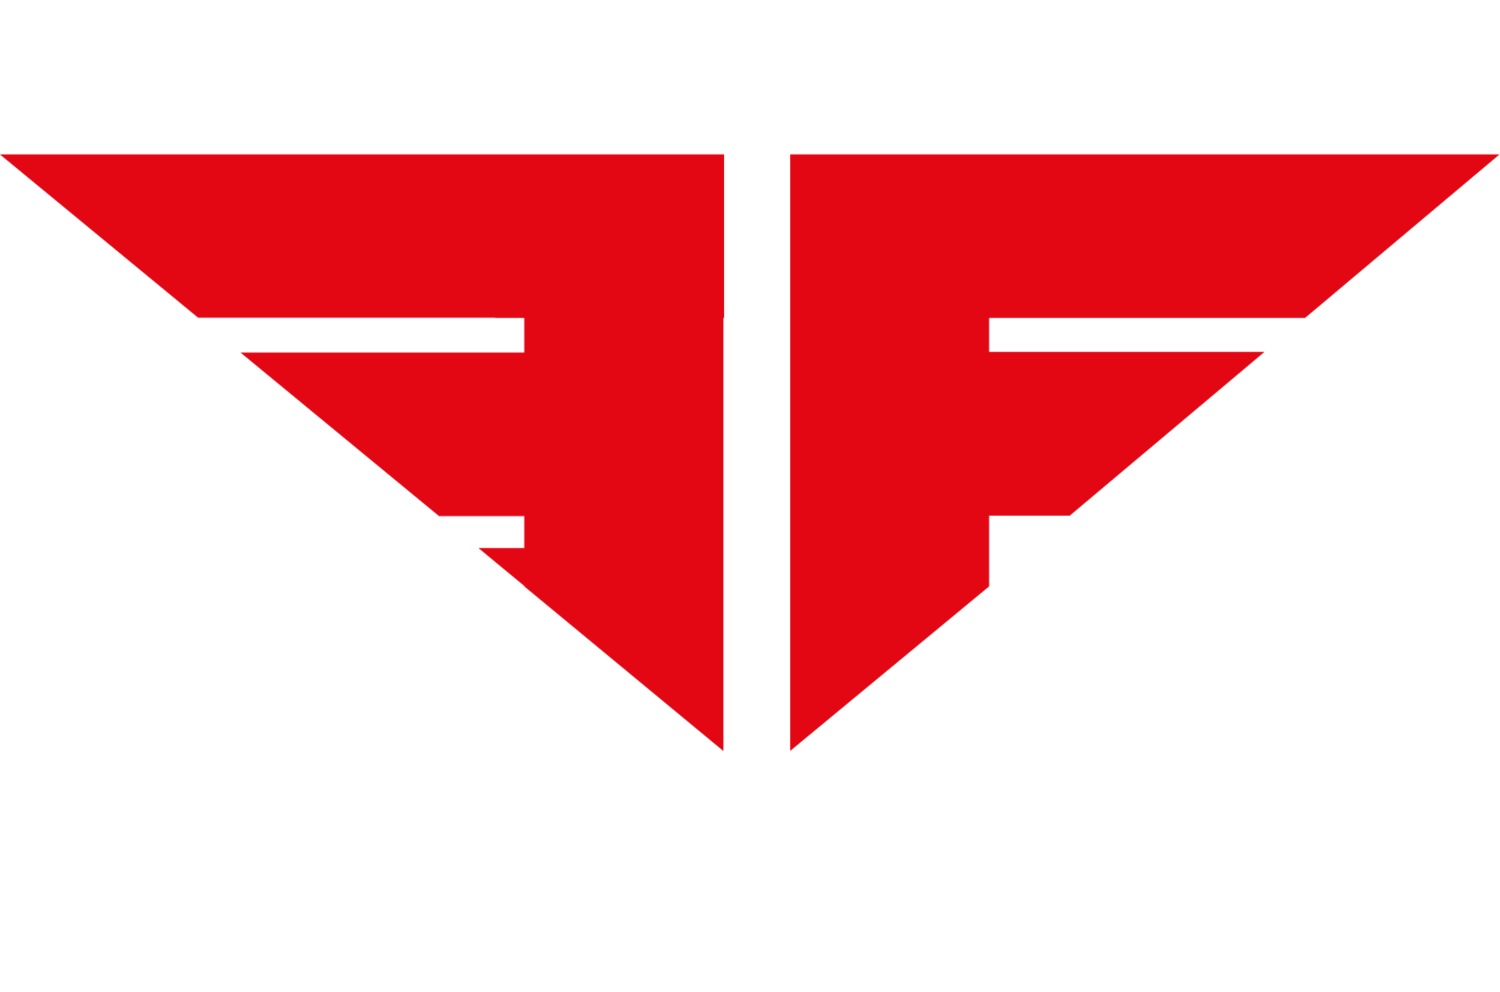 OLLY DIAL ELITE FITNESS